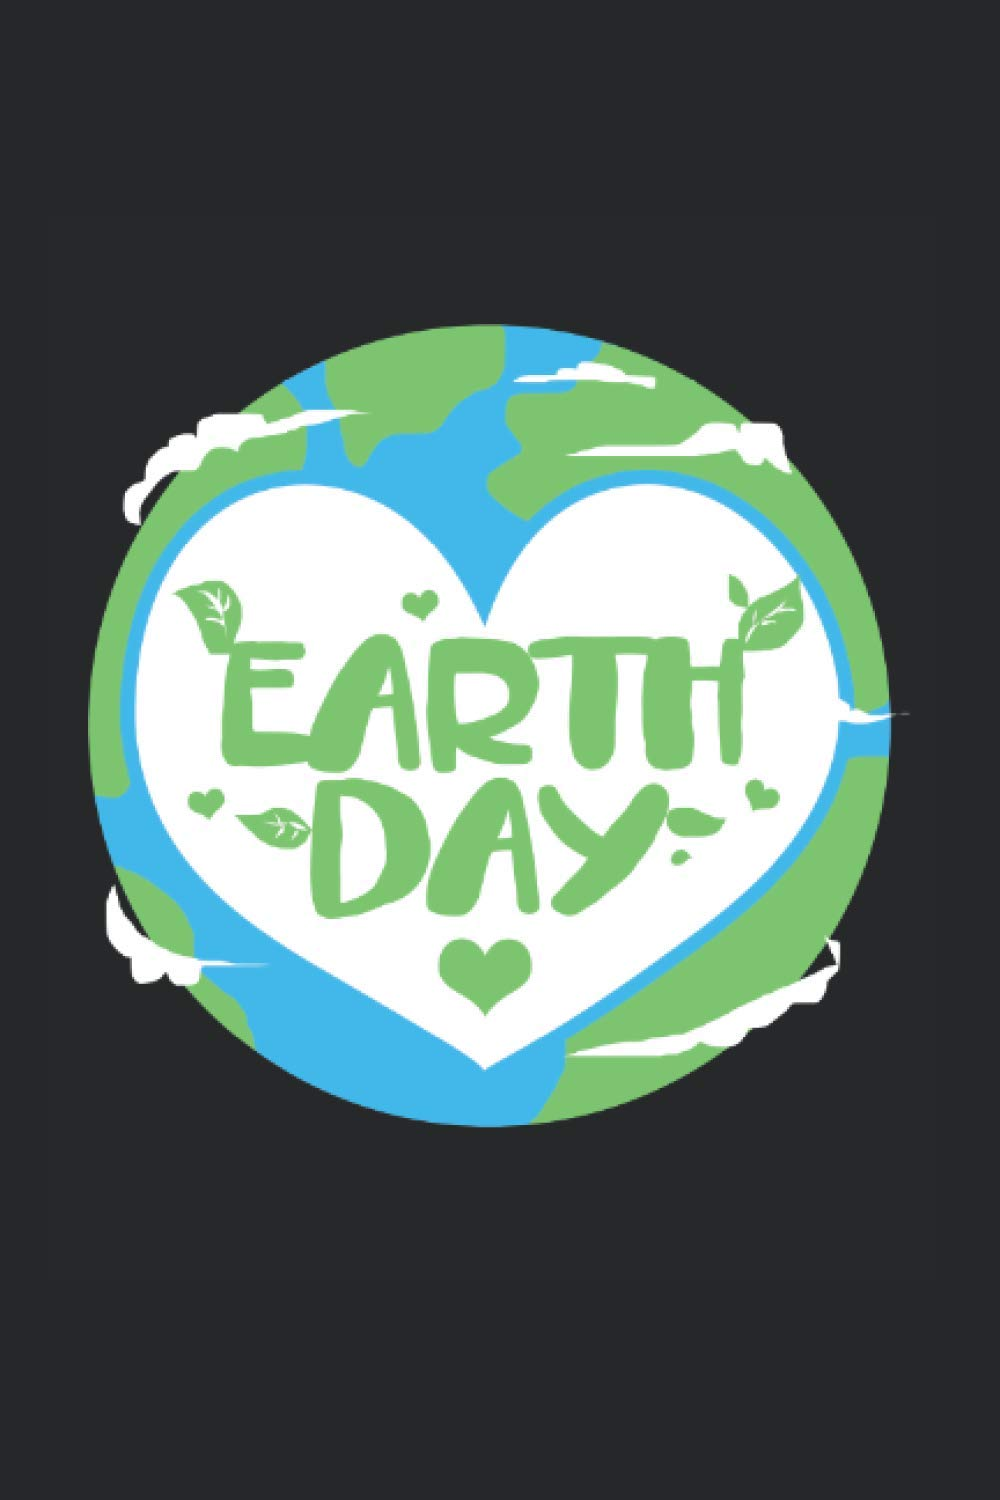 Earth Day Calendar 2021 Earth Day Calendar 2021 Earth Day Calendar Planner Monthly Weekly Earth Day Appointment Planner 2021 Earth Day Appointment Book 2021 Wales Elizabeth 9798550447482 Books